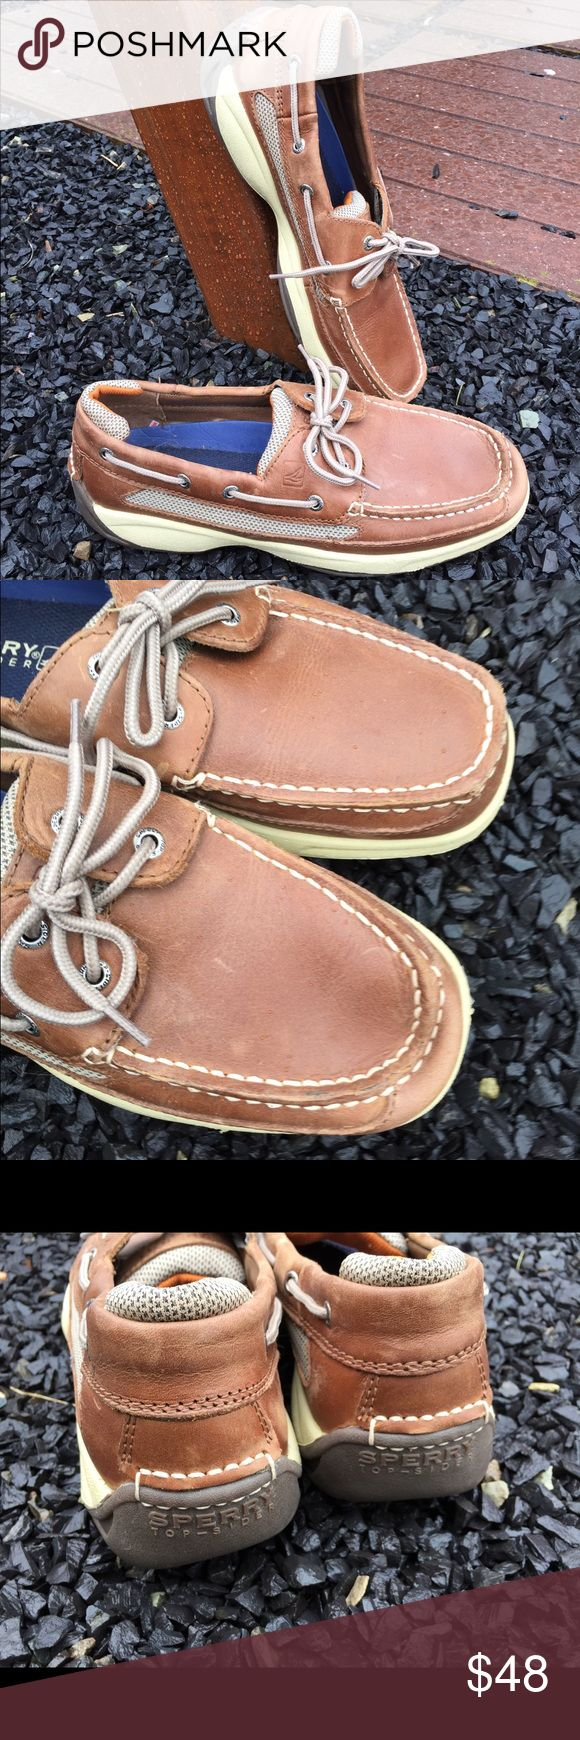 Sperry Top-Sider Mens Leather Boat Shoes Size 9.5 Size 9.5. Worn once. Be sure to view the other items in our closet. We offer  women's, Mens and kids items in a variety of sizes. Bundle and save!! We love reasonable offers!! Thank you for viewing our item!! Sperry Top-Sider Shoes Boat Shoes